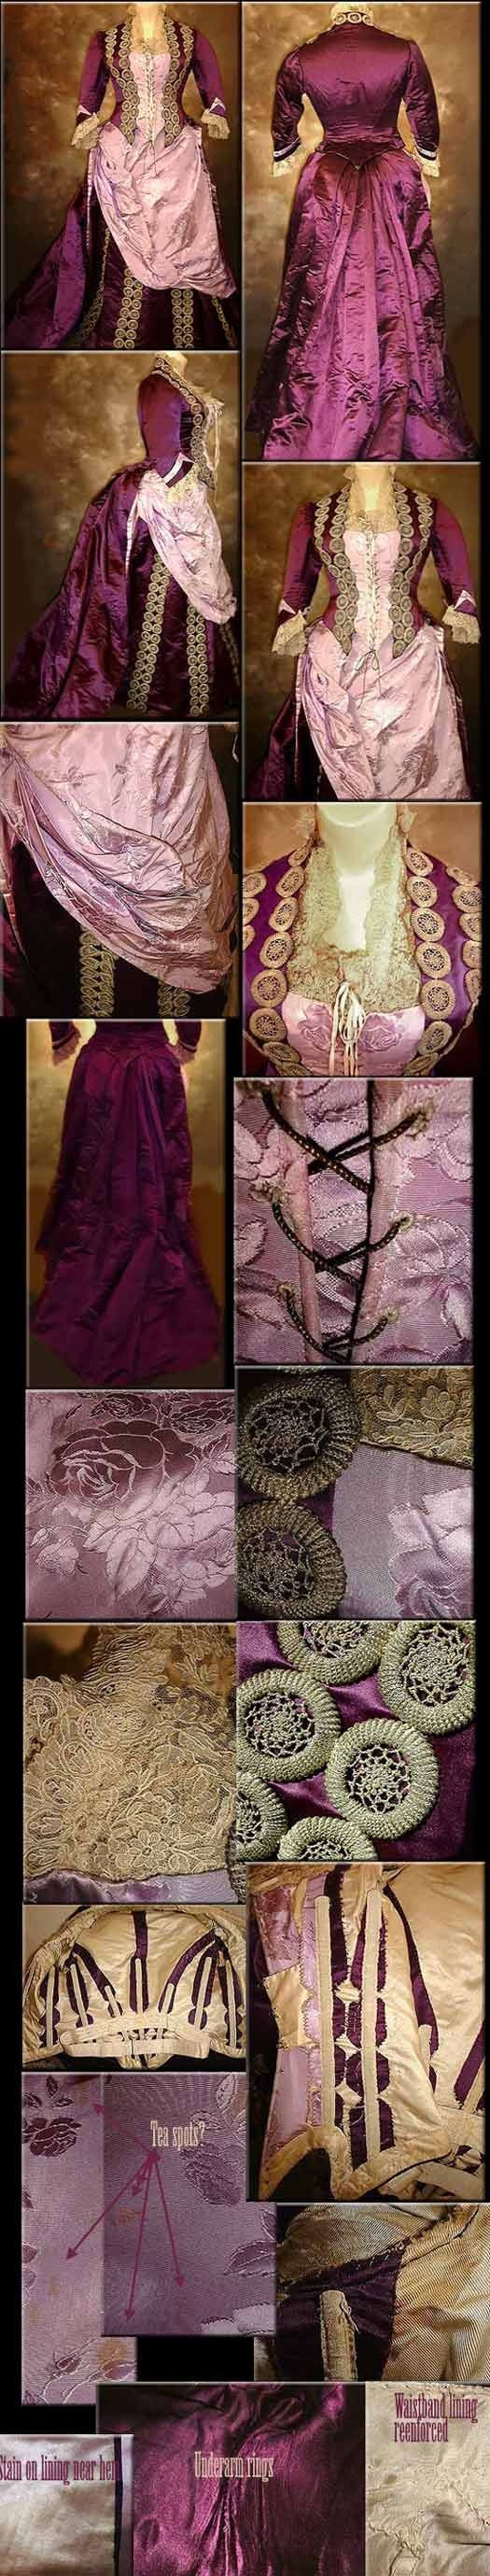 1888 silk satin reception gown. Glorious style!